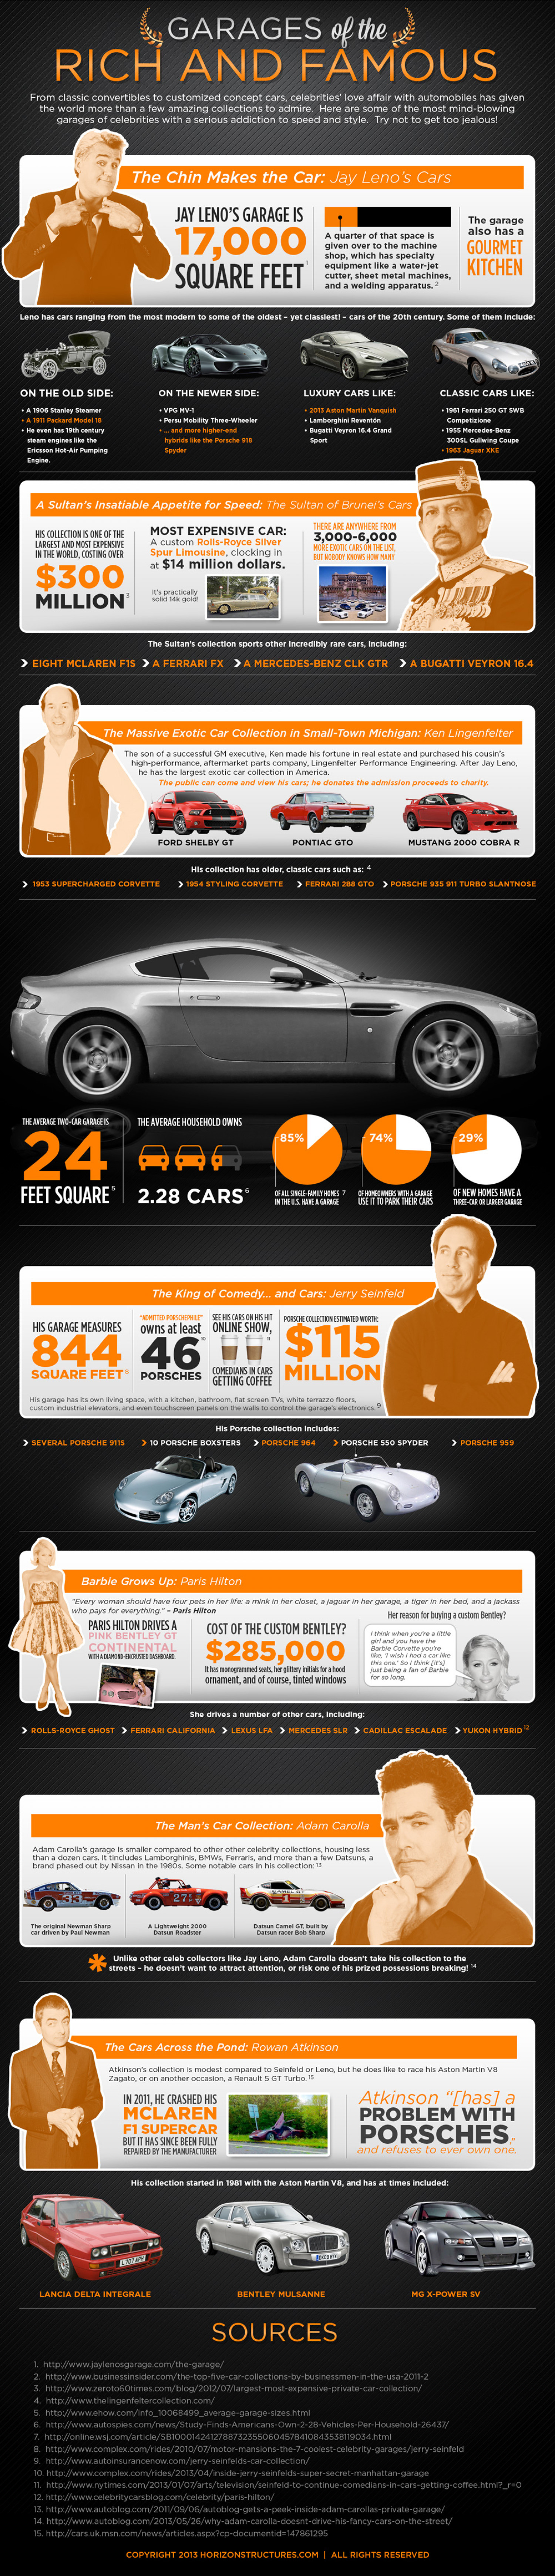 Garages of the Rich and Famous Infographic